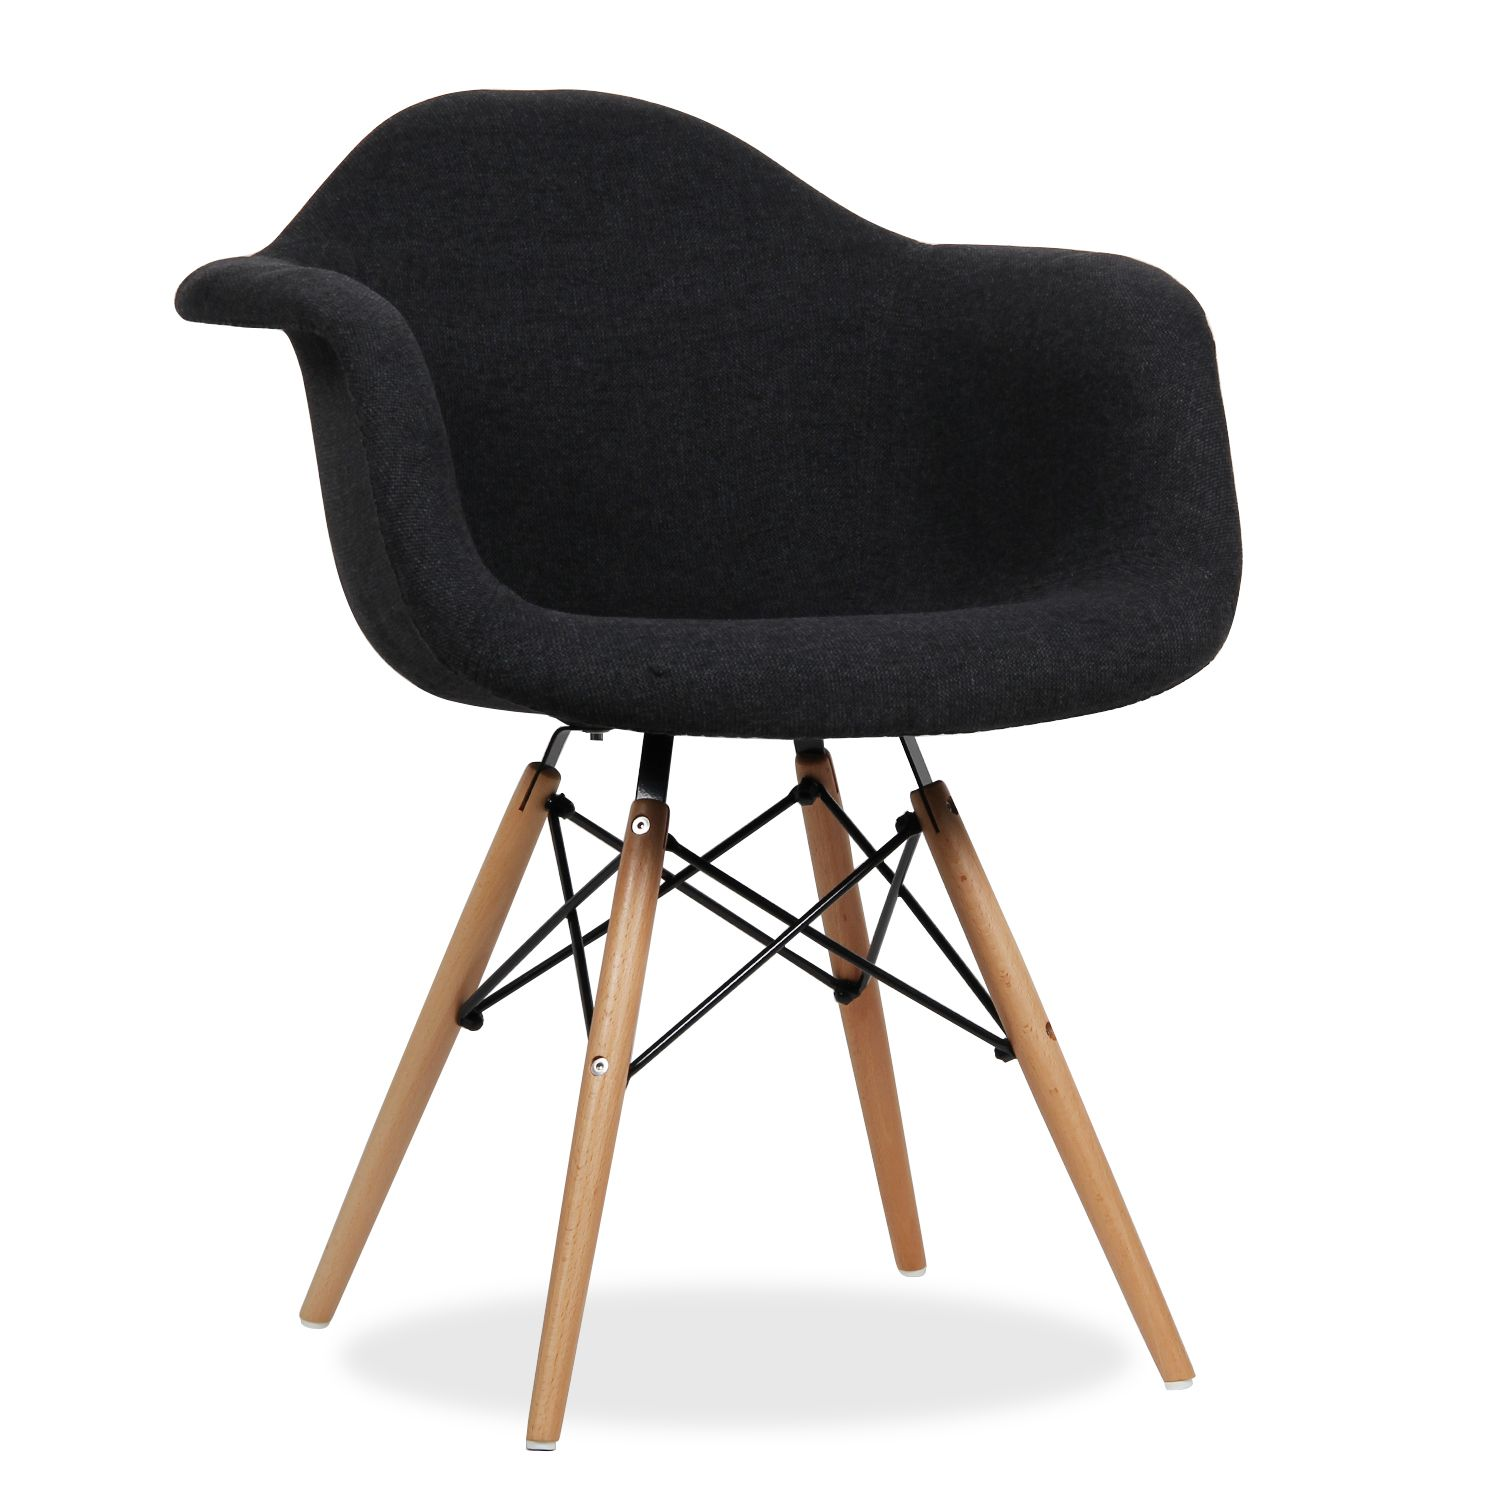 Upholstered desk chair with